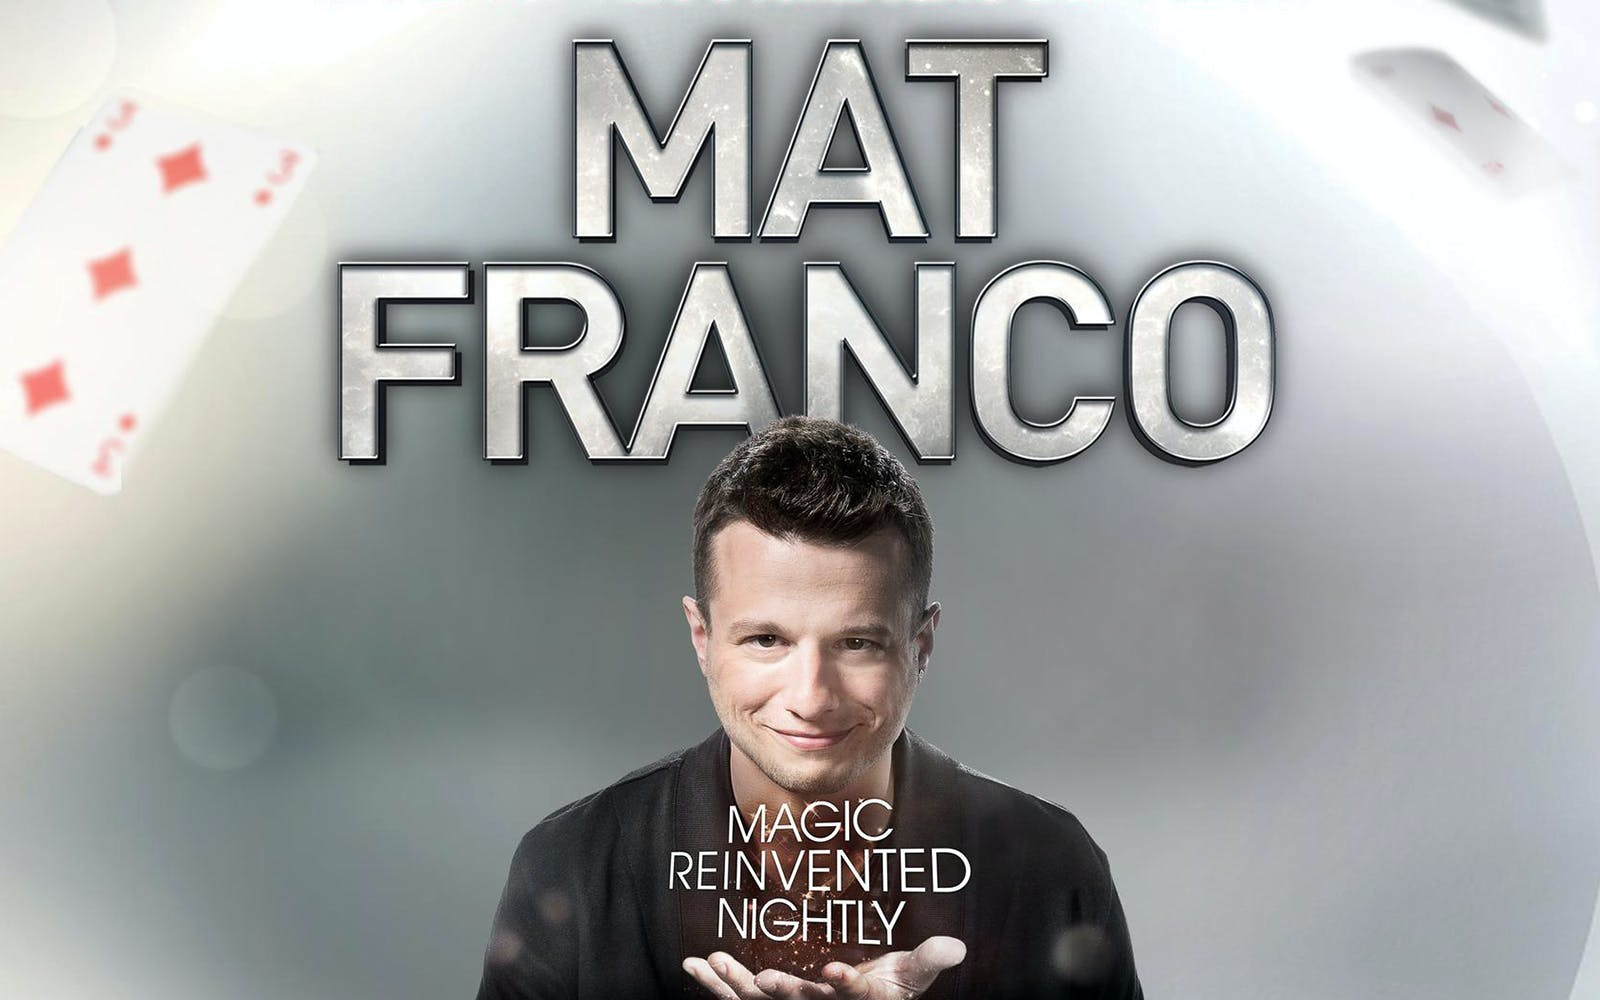 mat franco - magic reinvented nightly-1